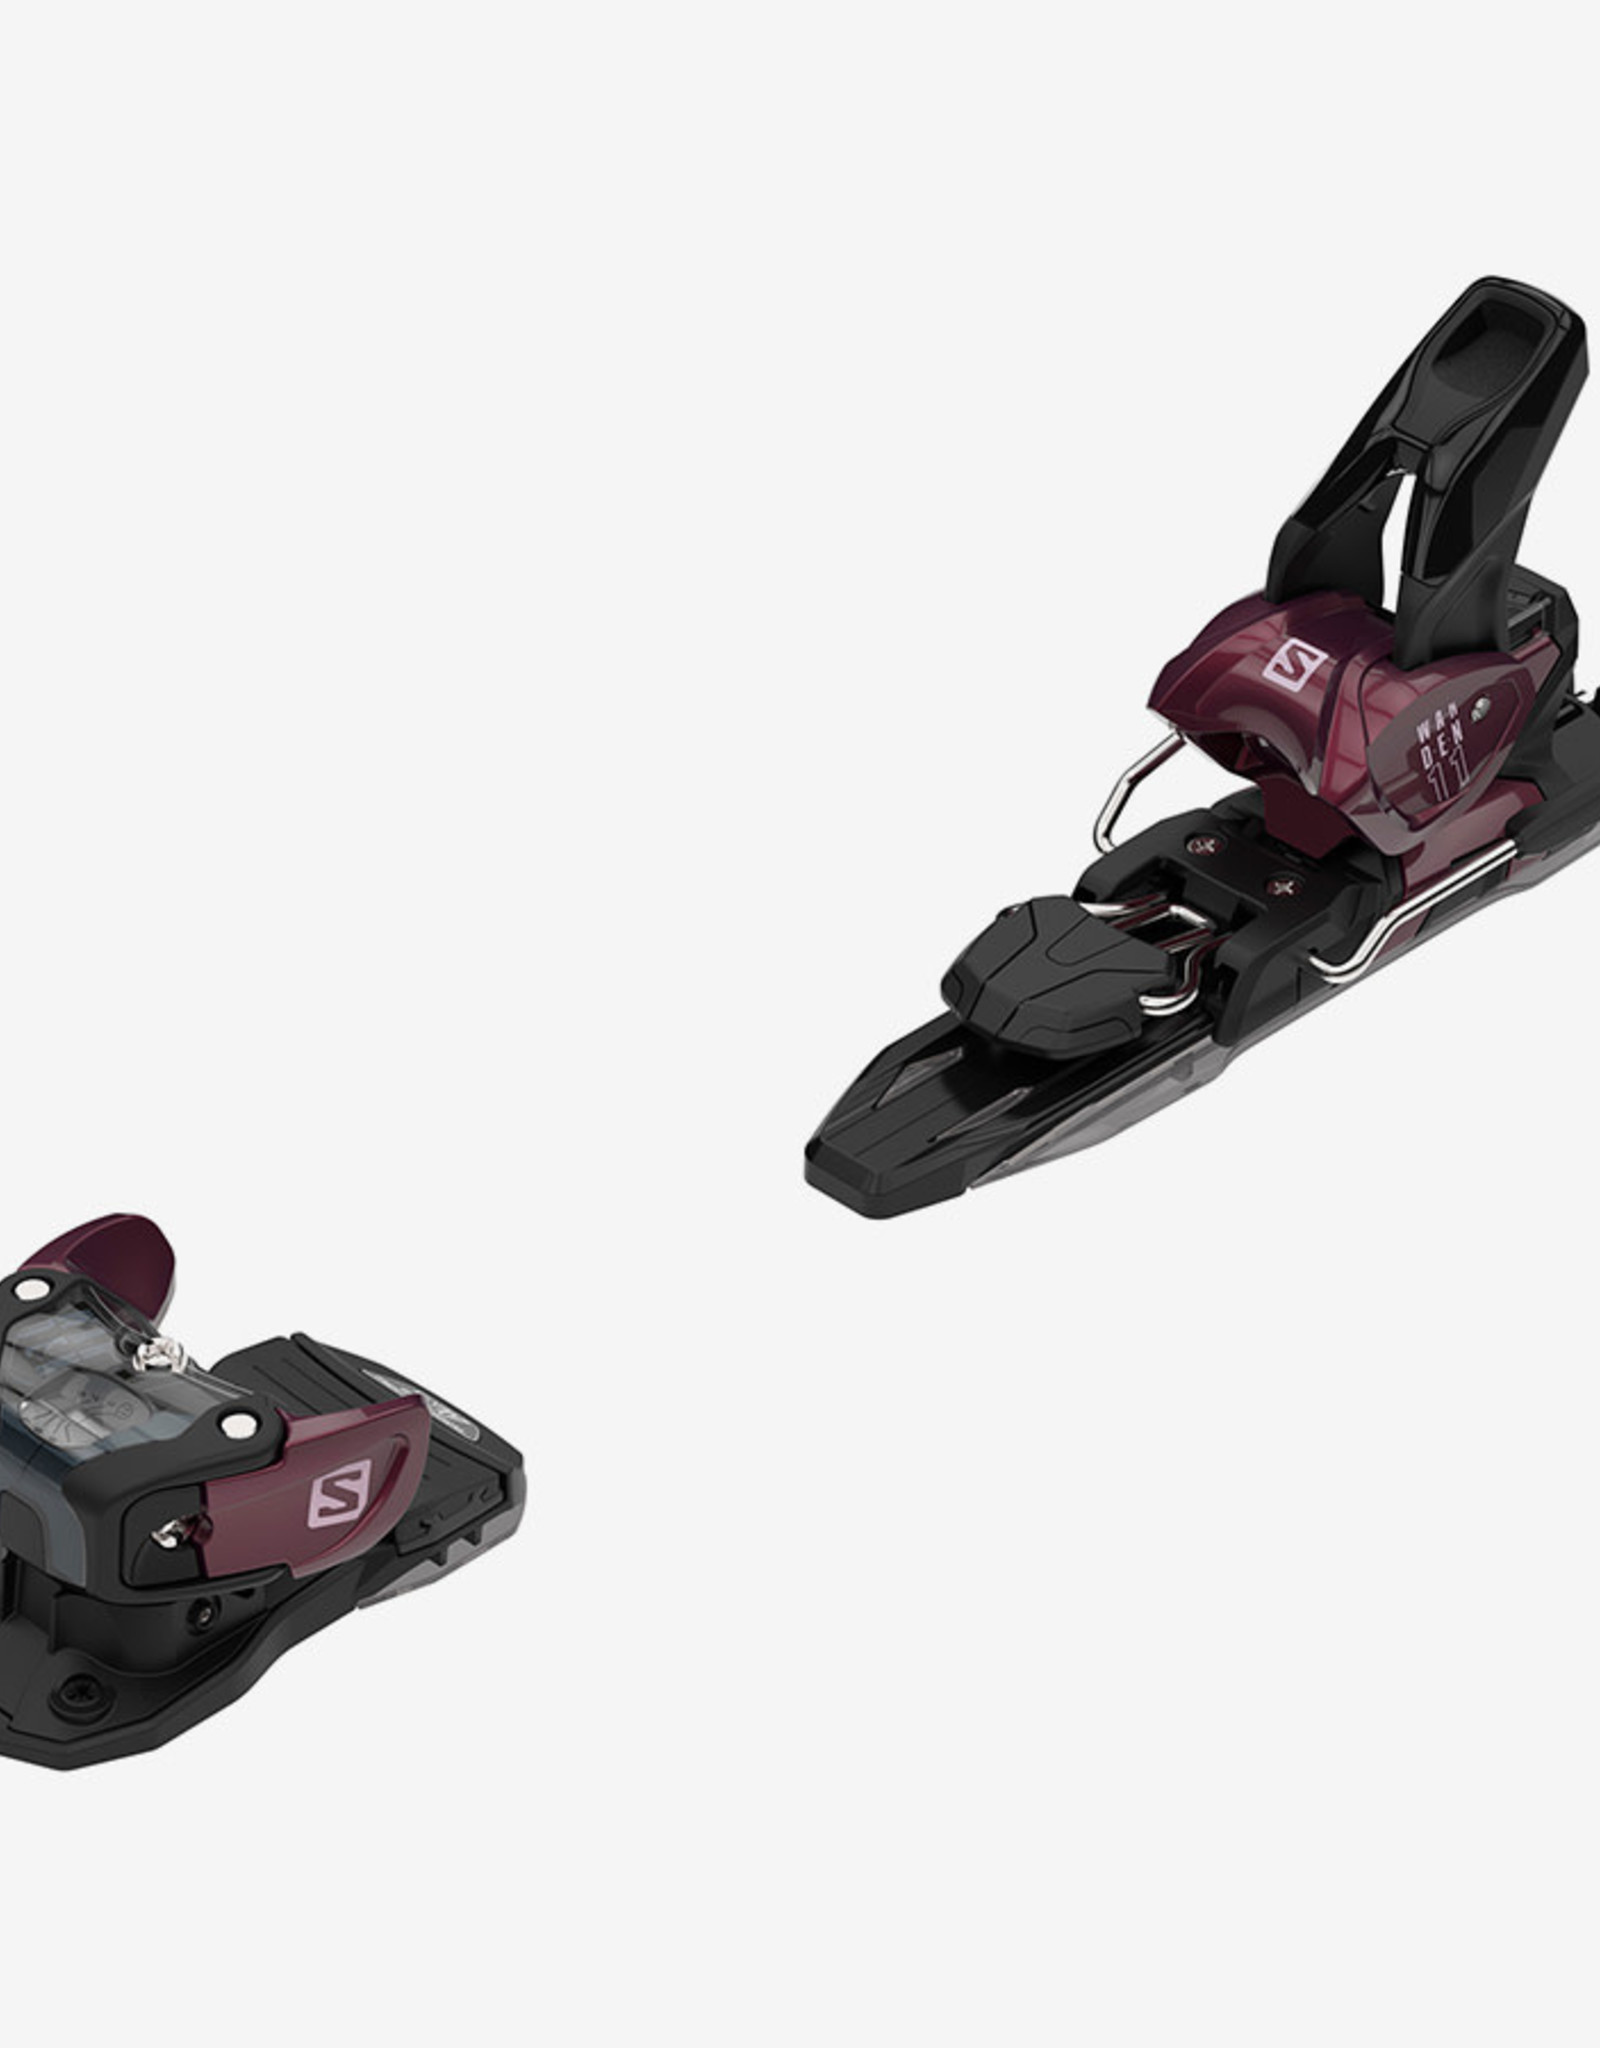 Salomon SALOMON Bindings WARDEN MNC 11 (20/21)